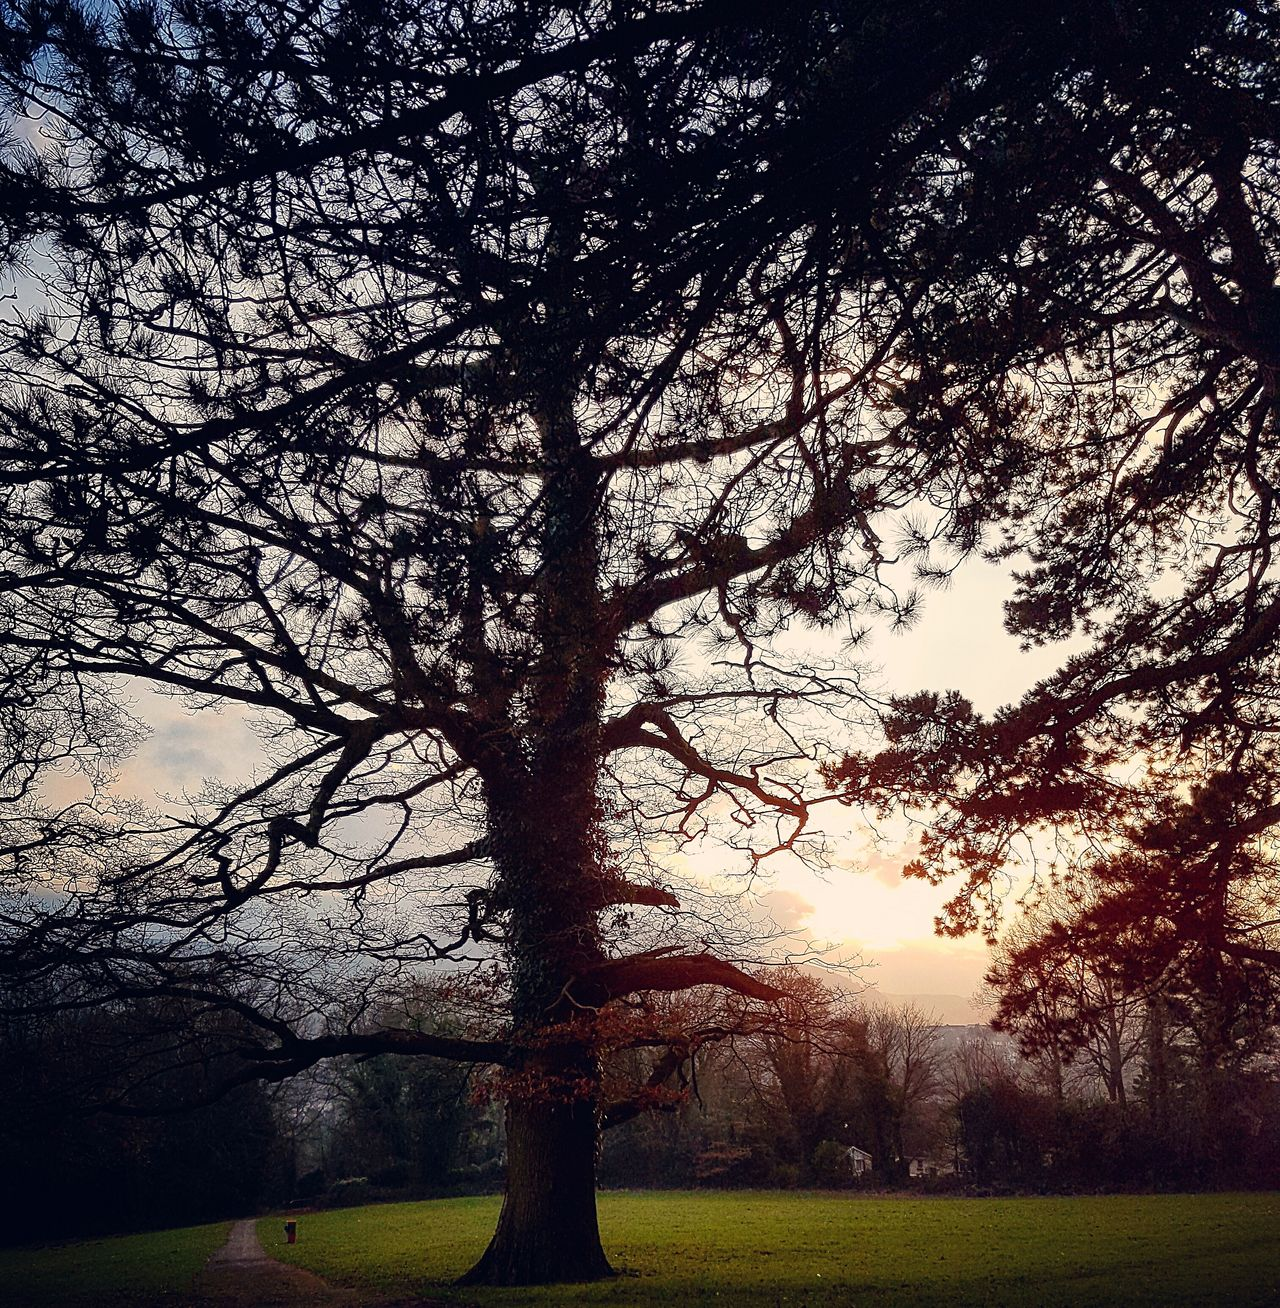 A walk in the park Tree Sky No People Nature Sunset Beauty In Nature This Week On Eyeem New Talents On EyeEm Landscape_Collection Nature Collection EyeEm Gallery Amateurphotography EyeEm Best Shots - Nature Dusk Sky Walking Around Taking Pictures Wales Outdoors